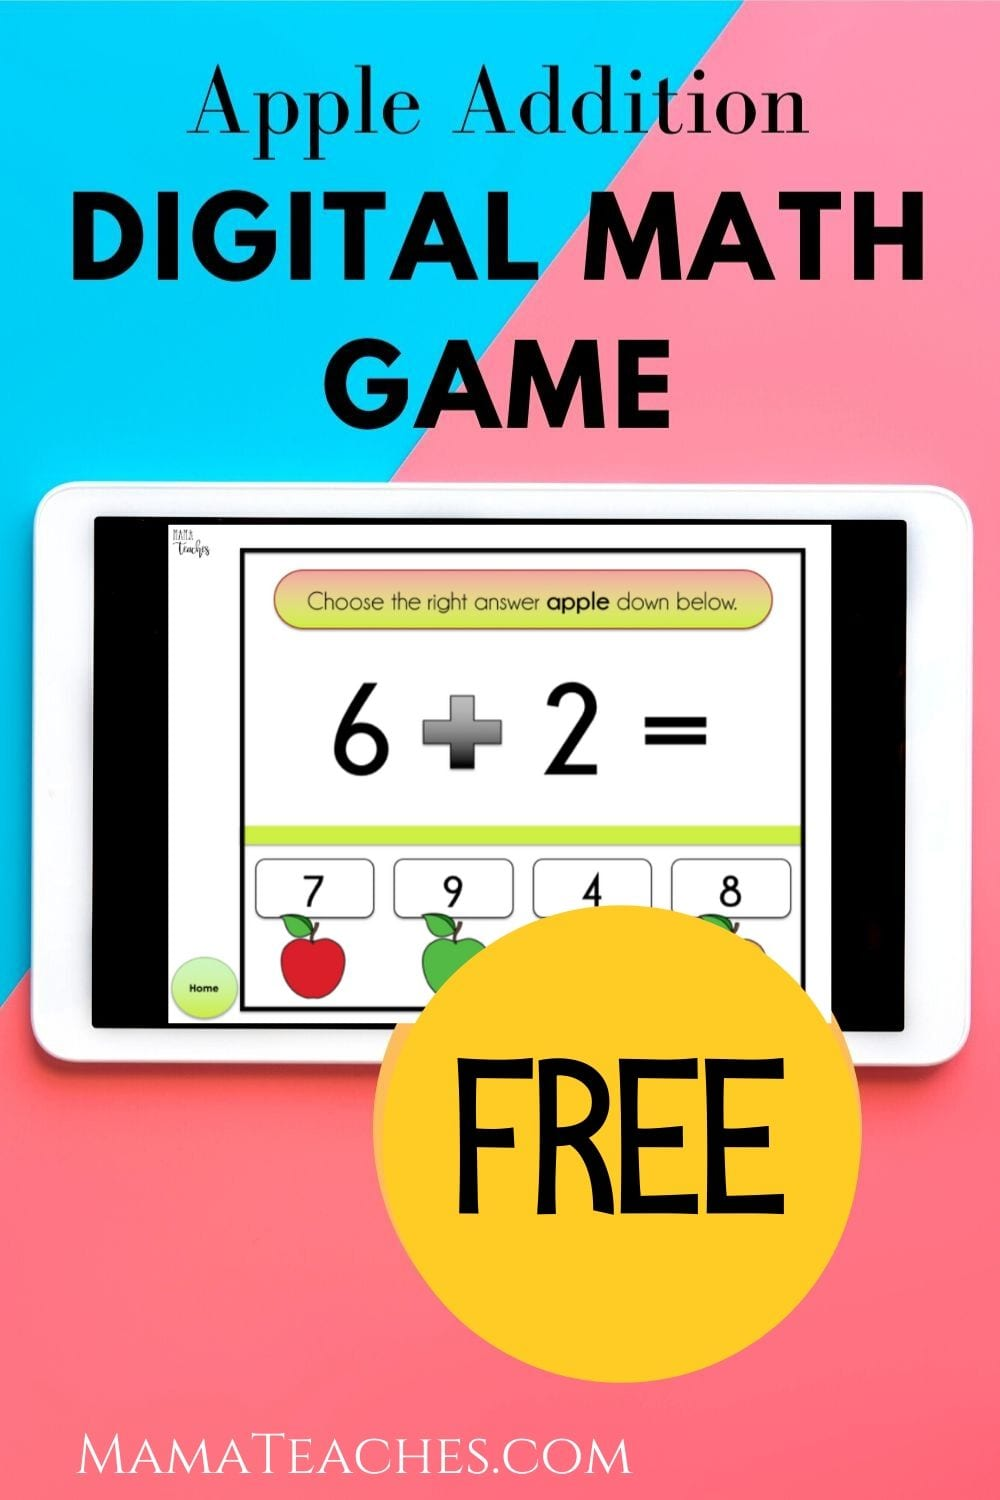 Free Apple Addition Digital Math Game for Early Learners